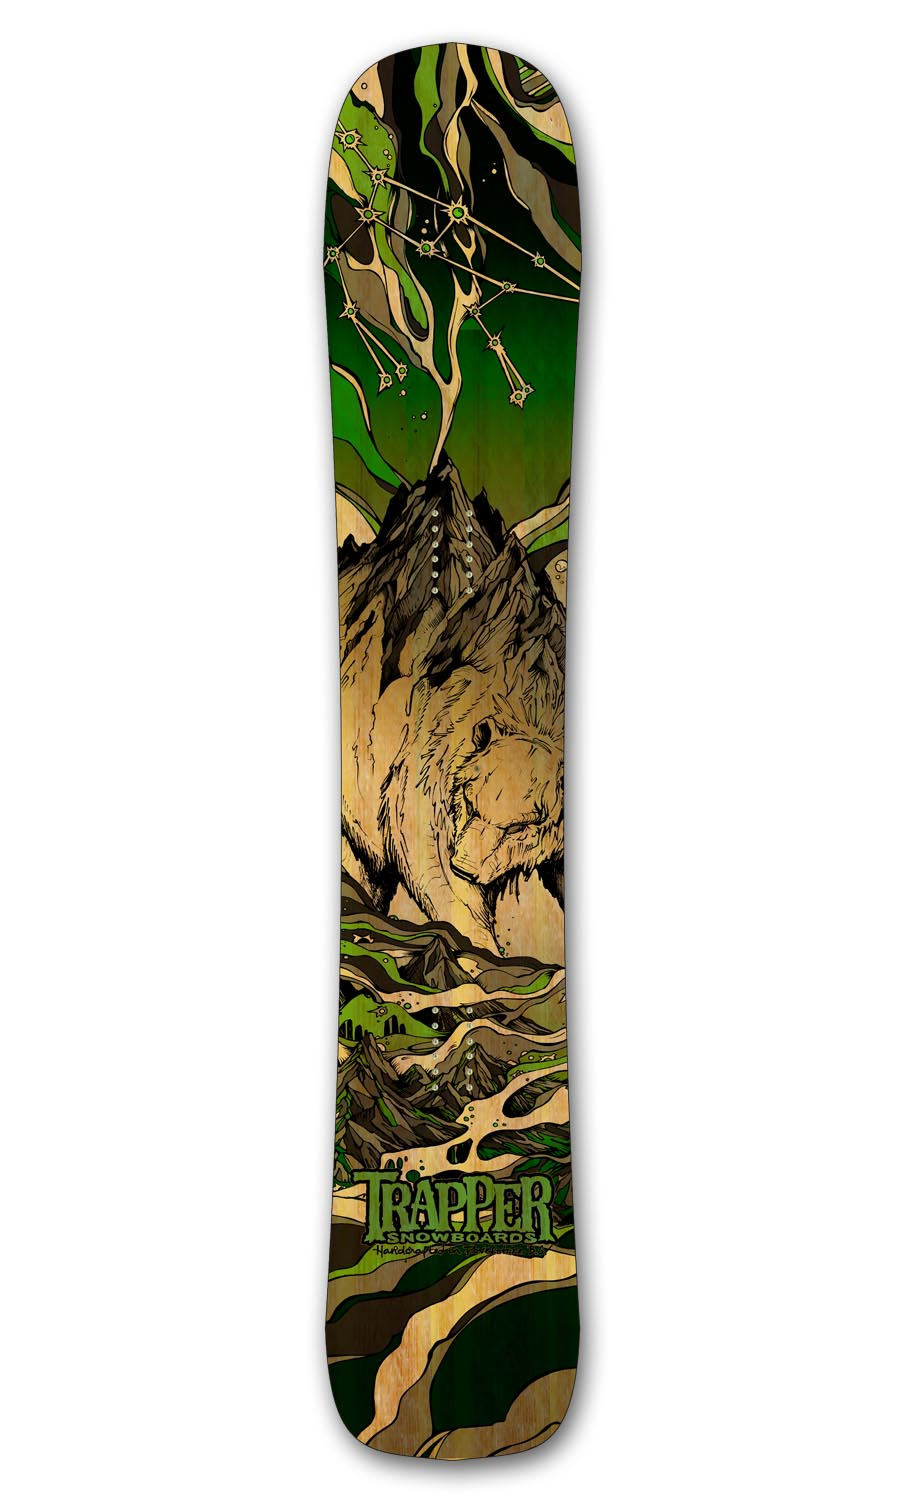 Trapper Snowboars URSA MAJOR board